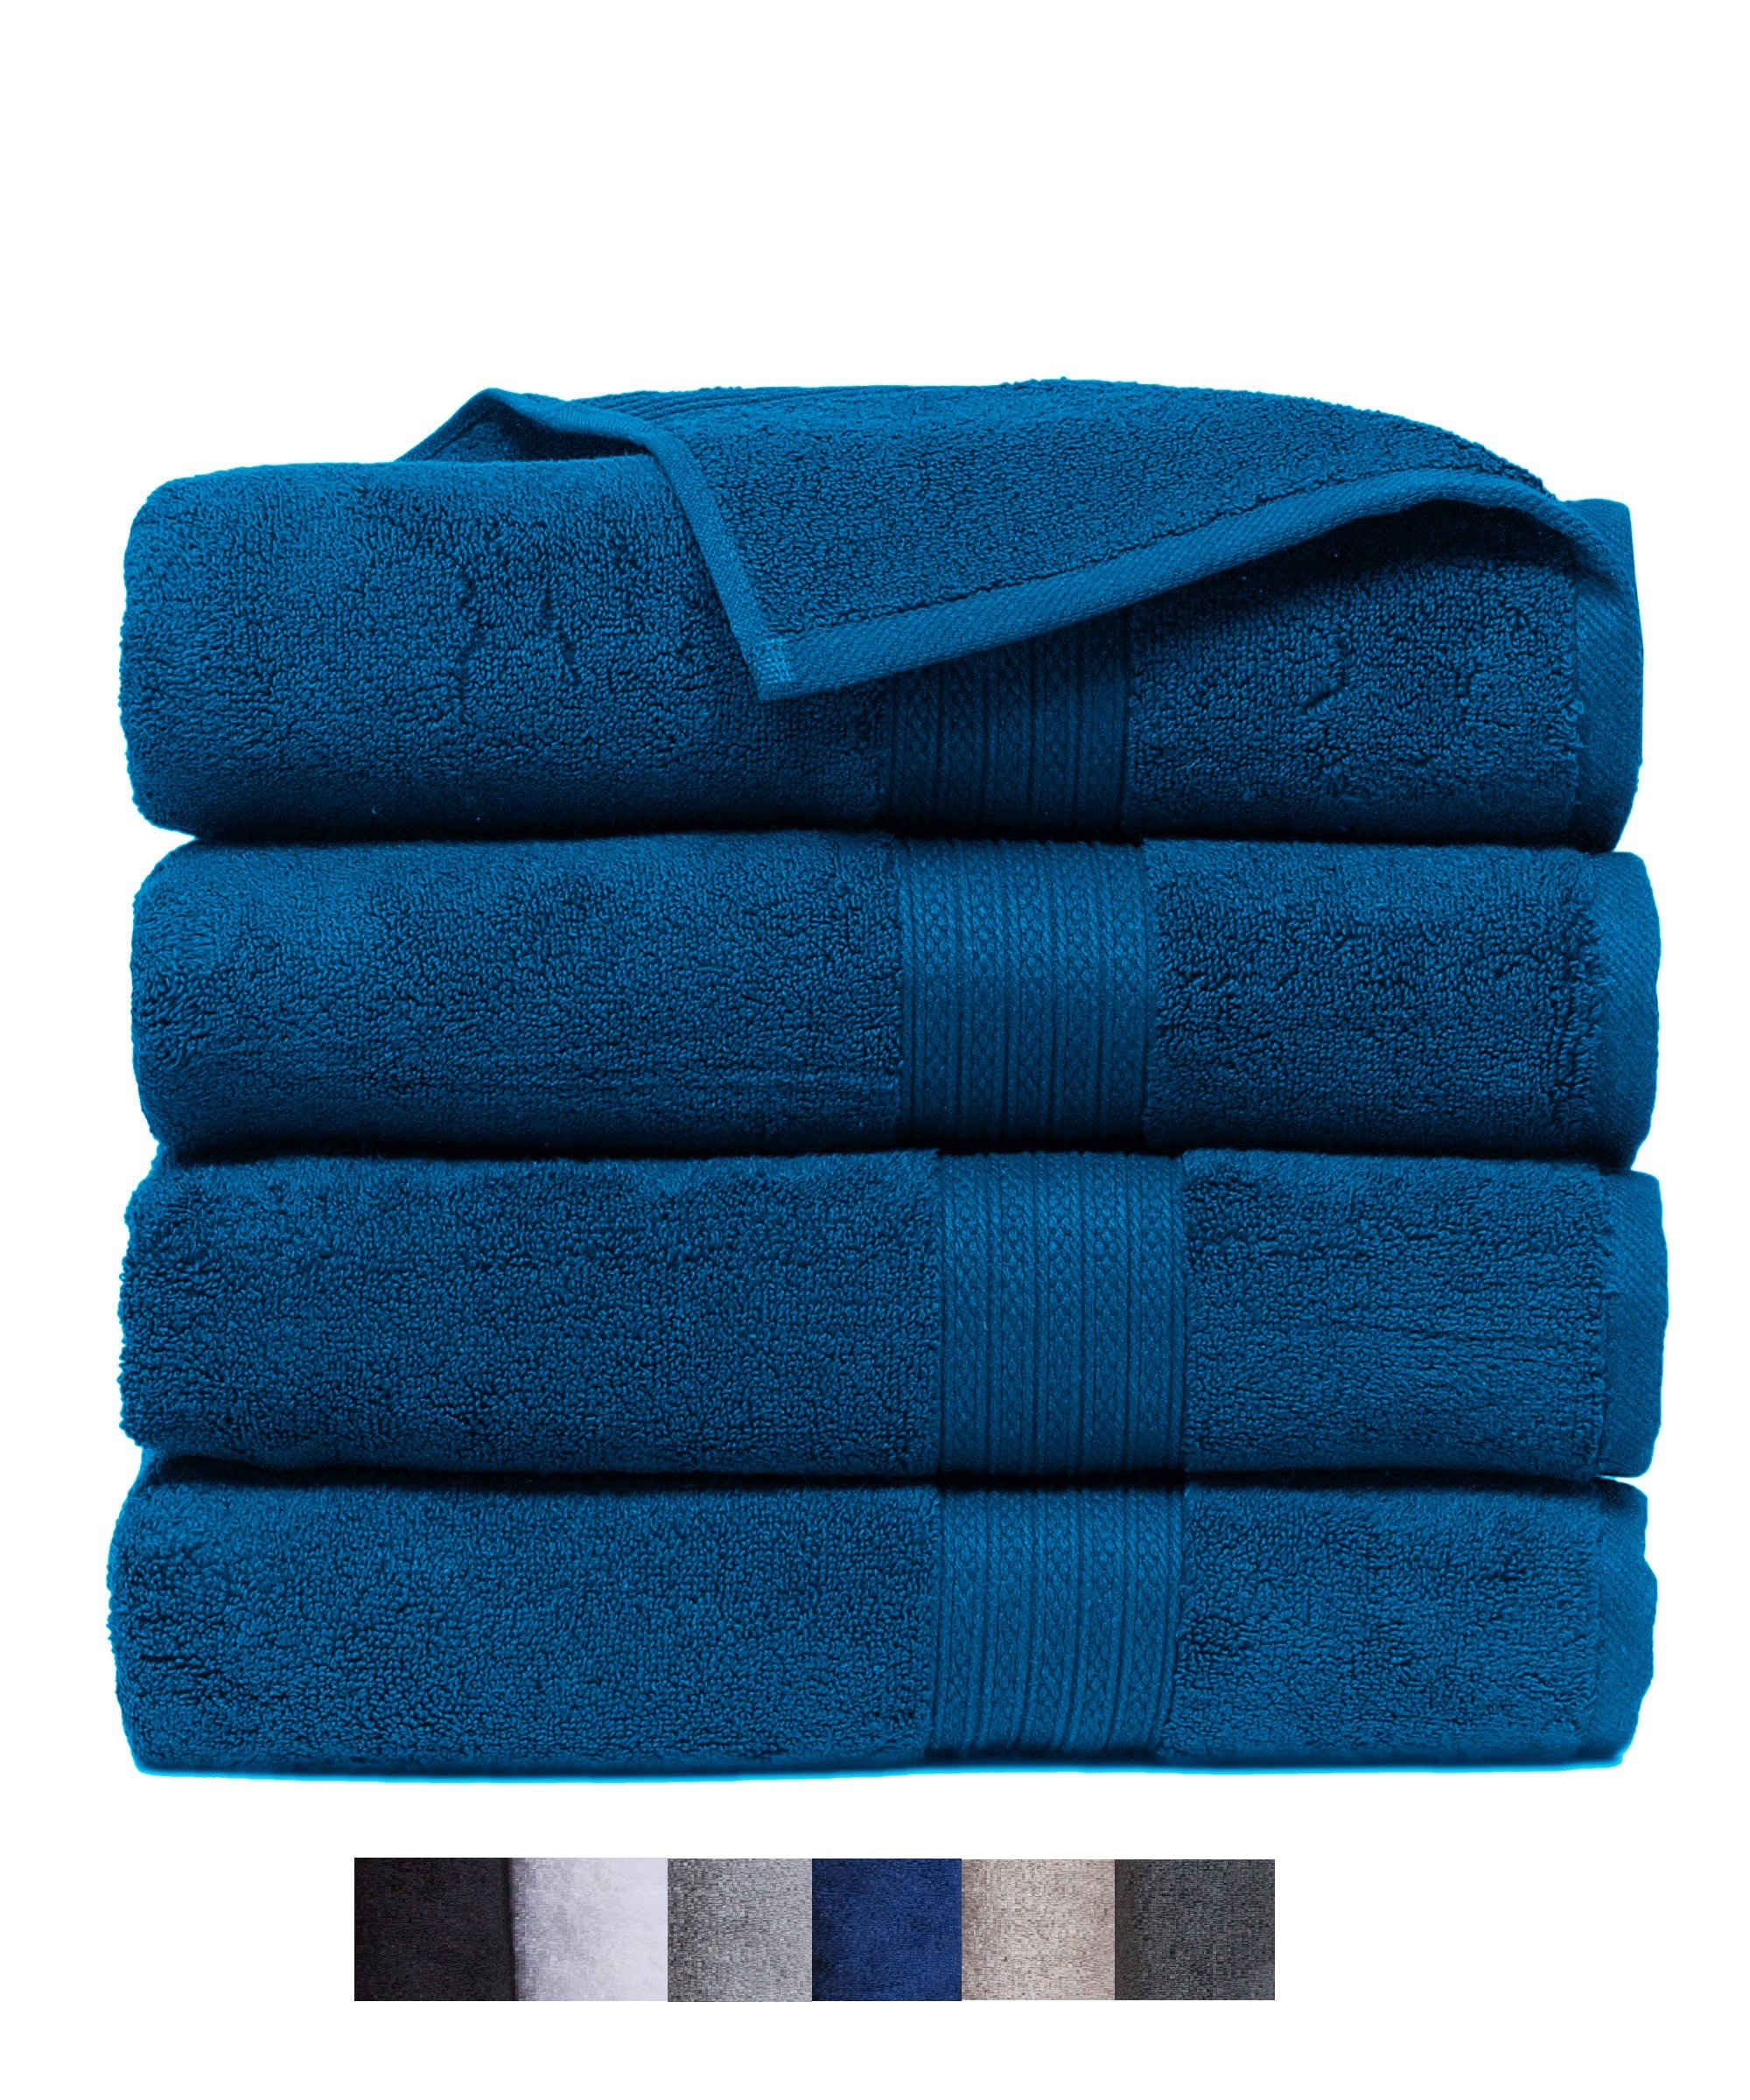 Casa Platino Quick Dry Super Zero Twist 4 Pack Large Bath Towel Set 28x54 7 Star Hotel Luxury Collection - 100% Pure Super Zero Twist Cotton (navy) by Casa Platino